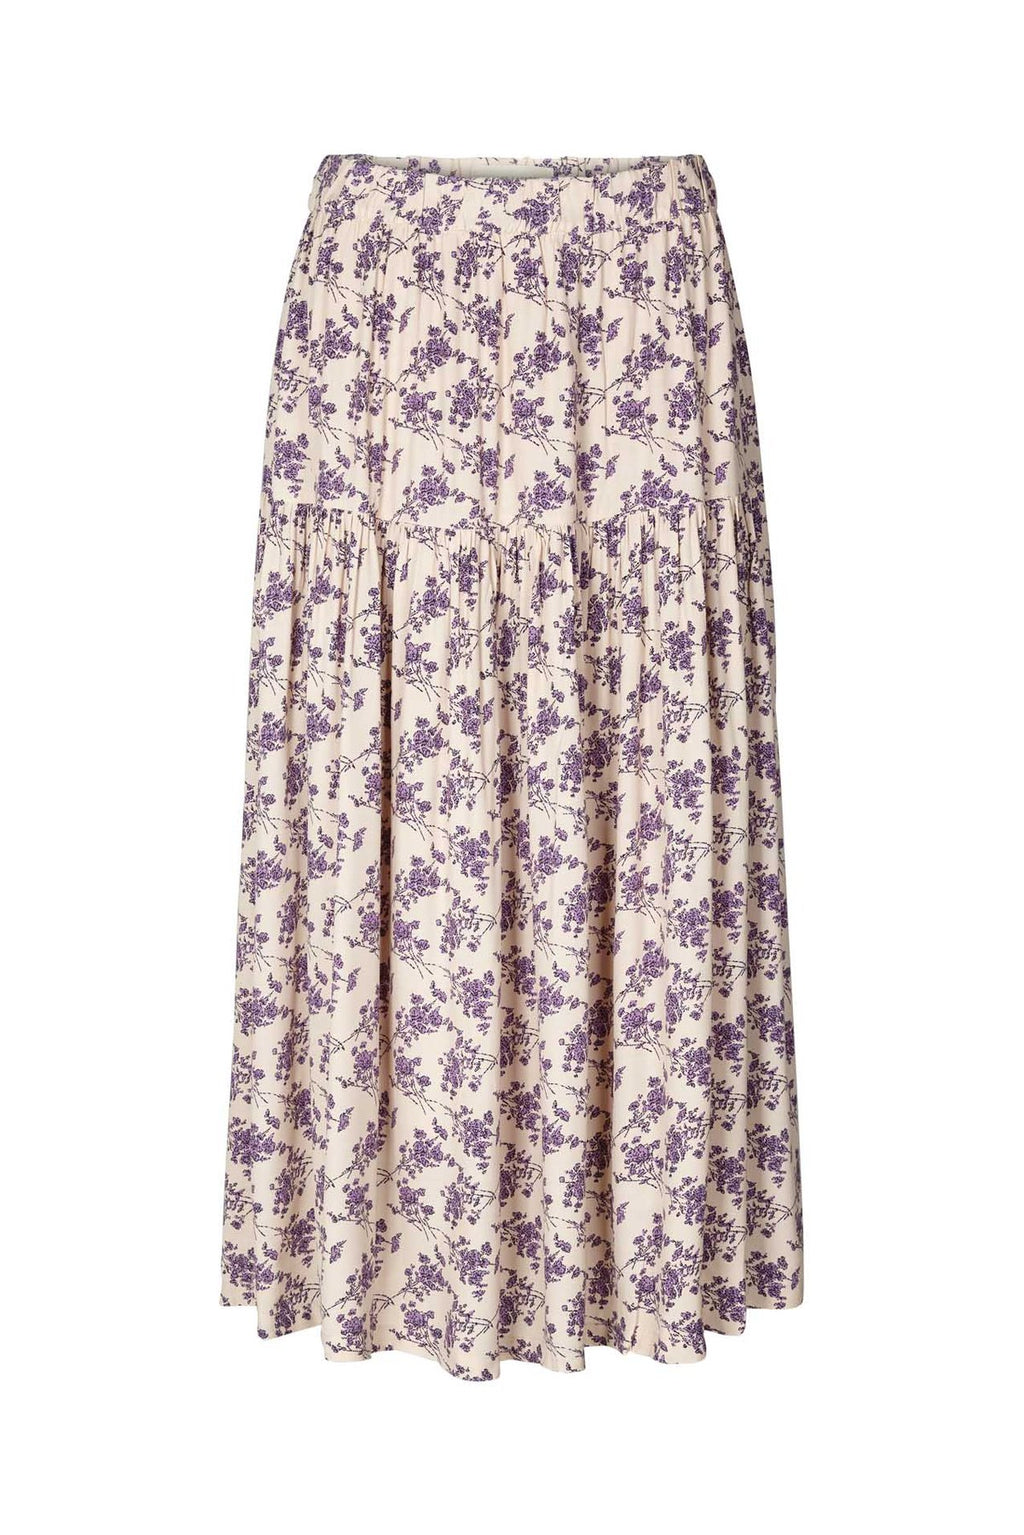 Lollys Laundry Cokko Cream Floral Print Skirt